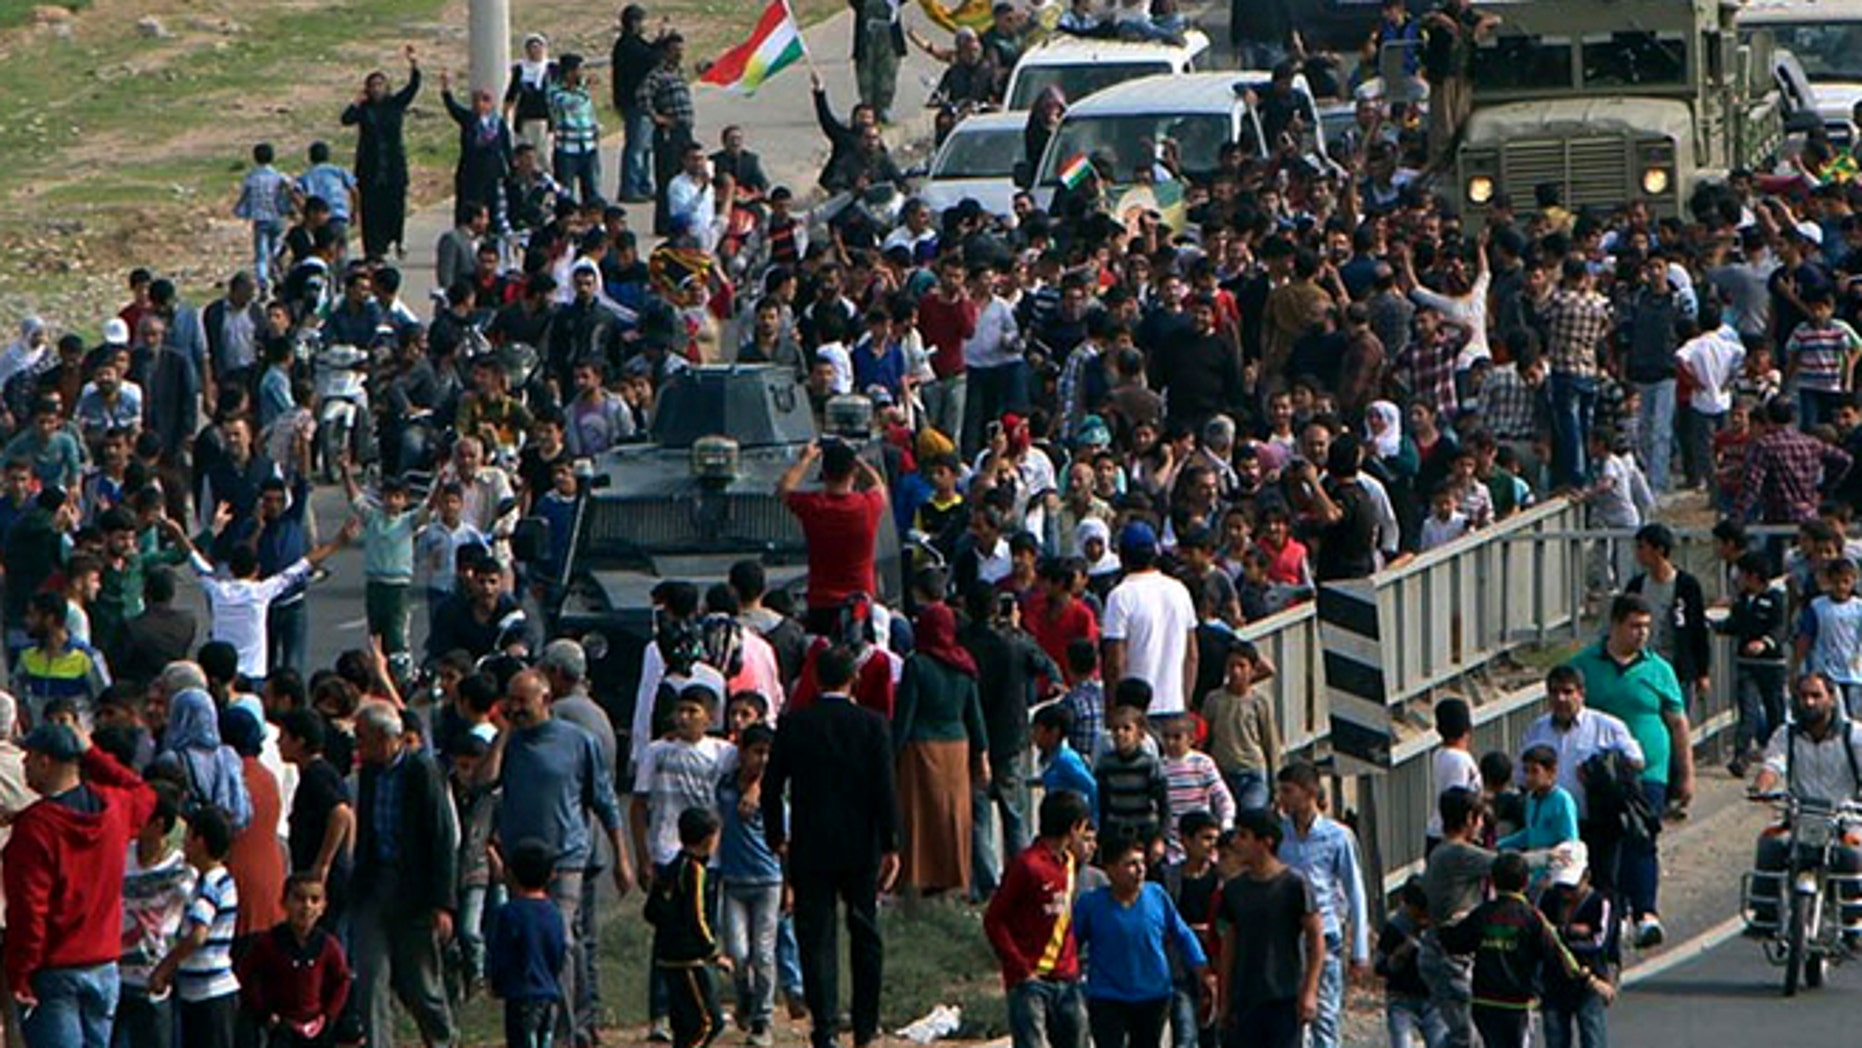 Oct. 29, 2014: Cheering local people surround a group of Iraqi Kurdish Peshmerga troops arrived in Nusaybin, Mardin in southeastern Turkey. The Peshmergas are on their way to Syria to help Syrian Kurds fighting Islamic State extremists in the embattled border town of Kobani.